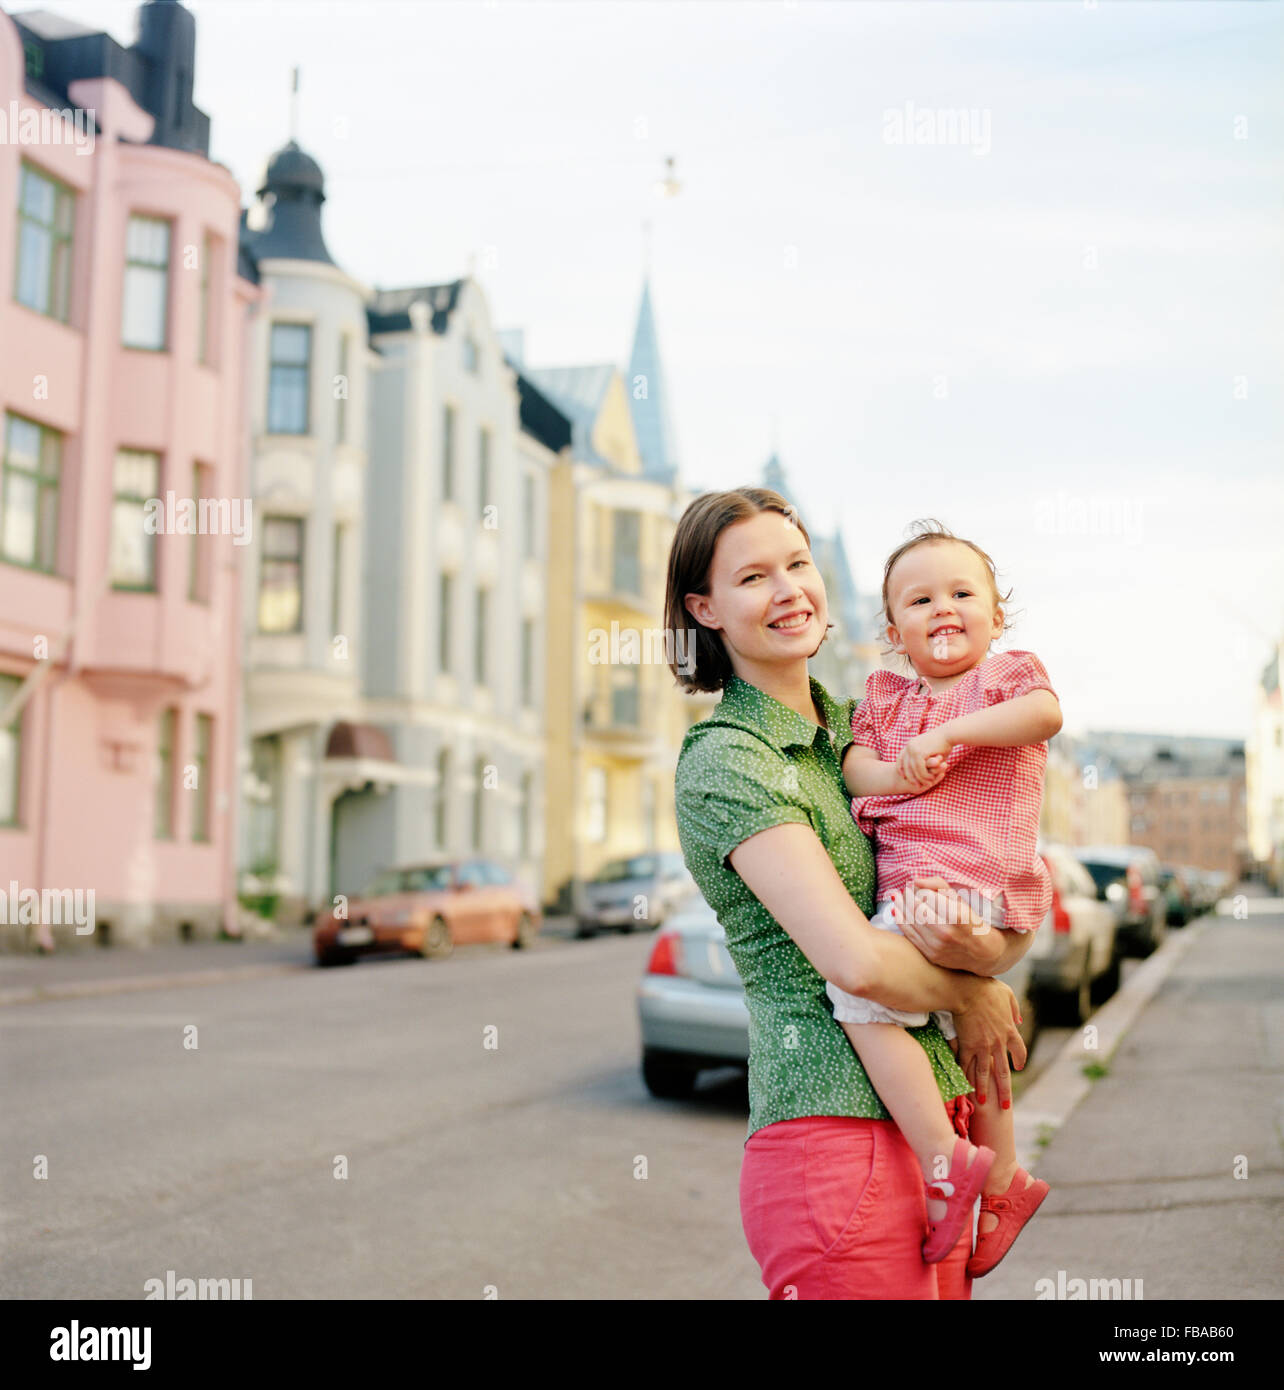 Finland, Uusimaa, Helsinki, Portrait of mother holding daughter (2-3) on street - Stock Image